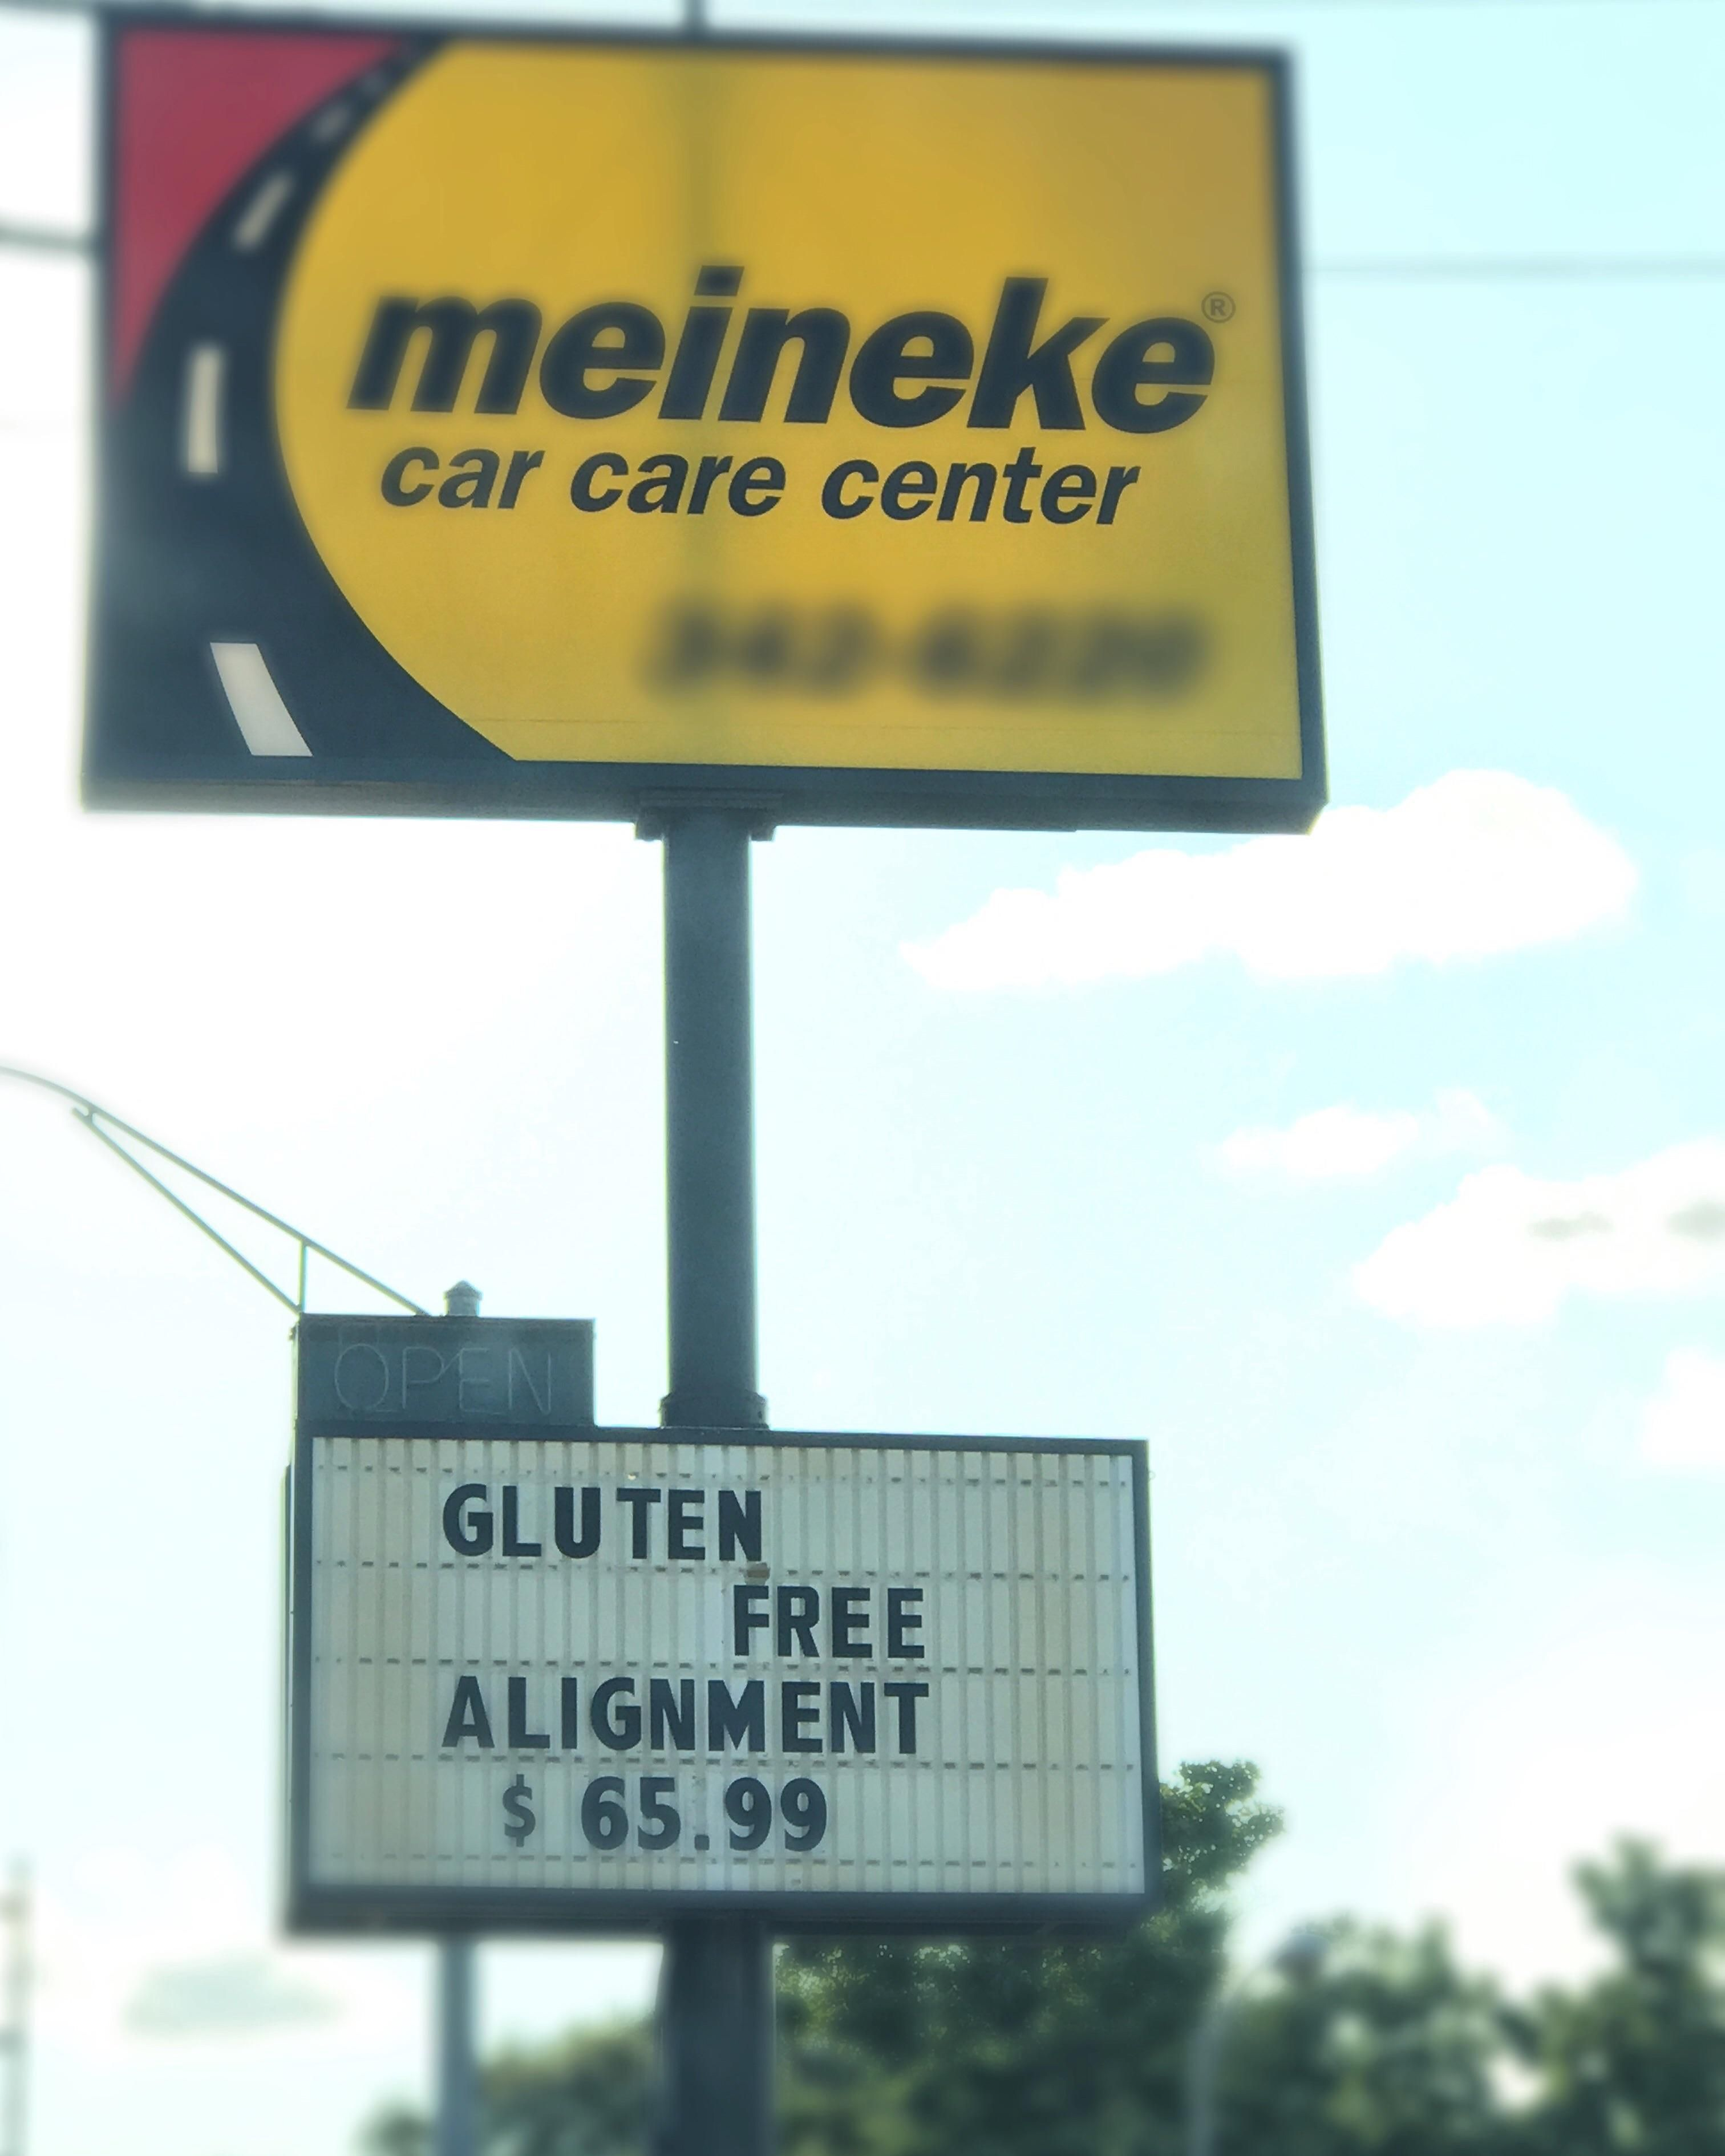 Gluten is the trend now...